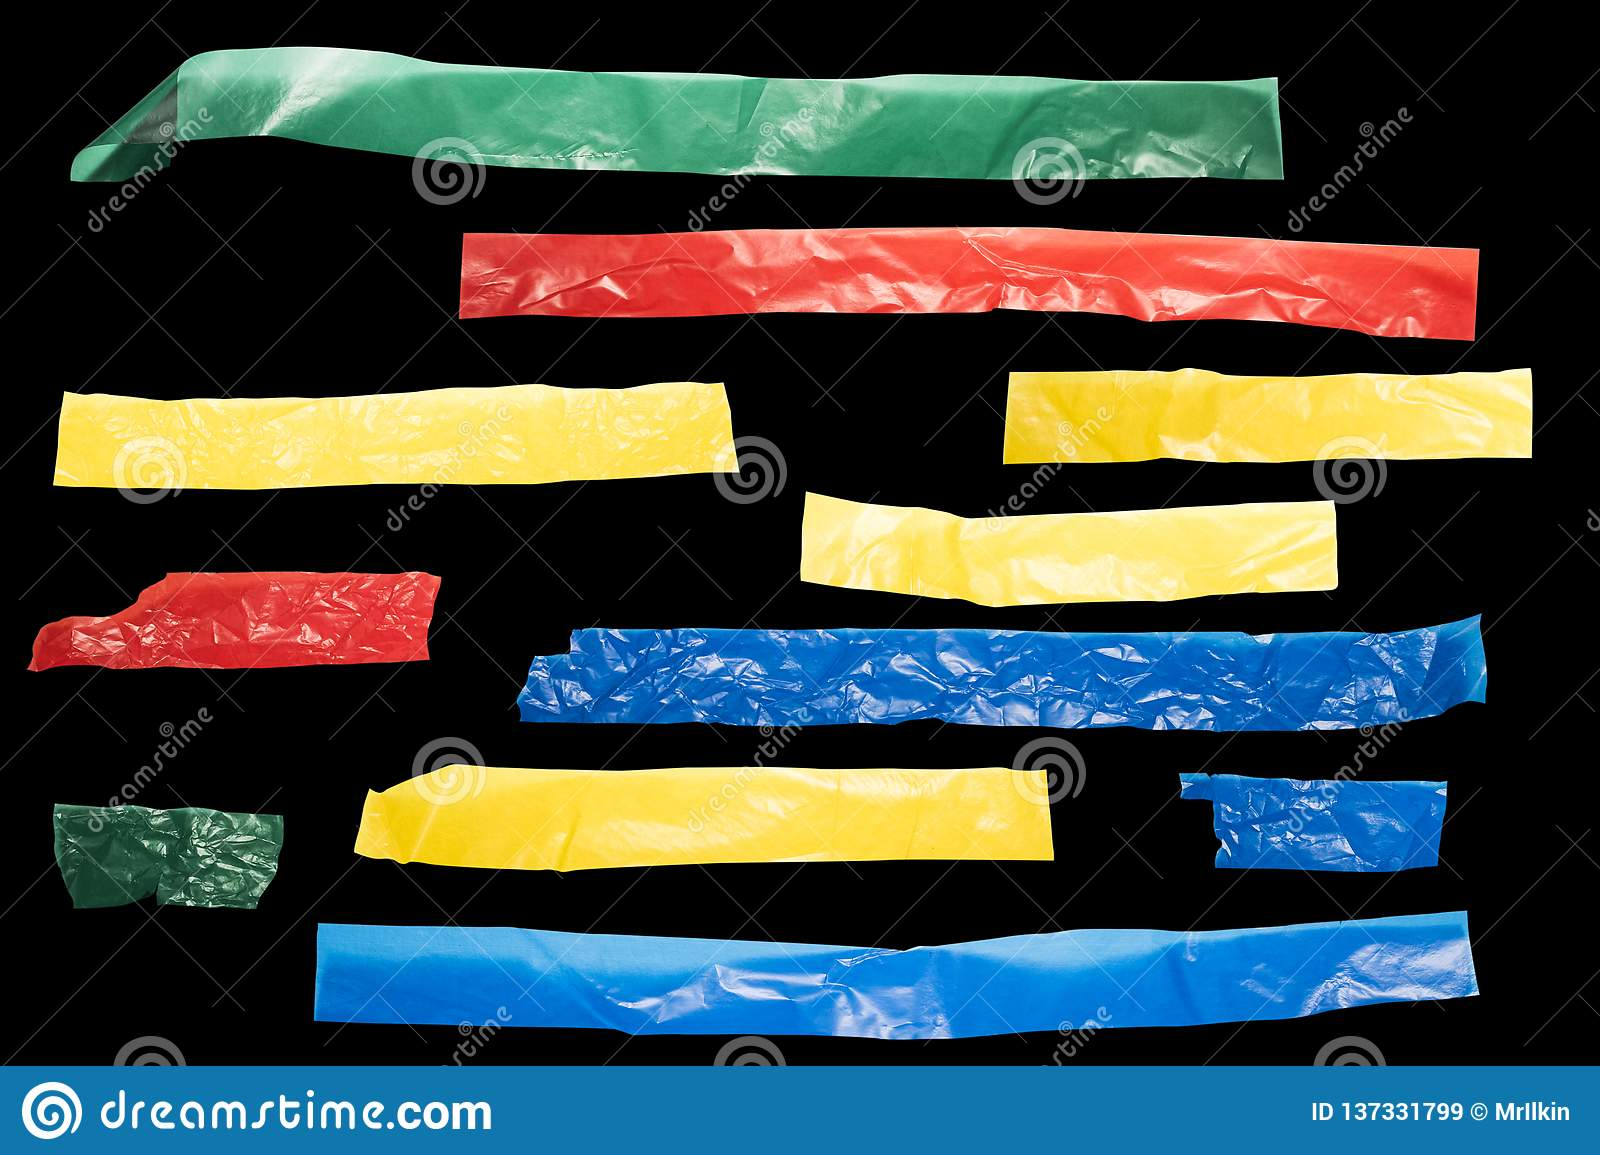 Strips of colored tape on a black background for lower third